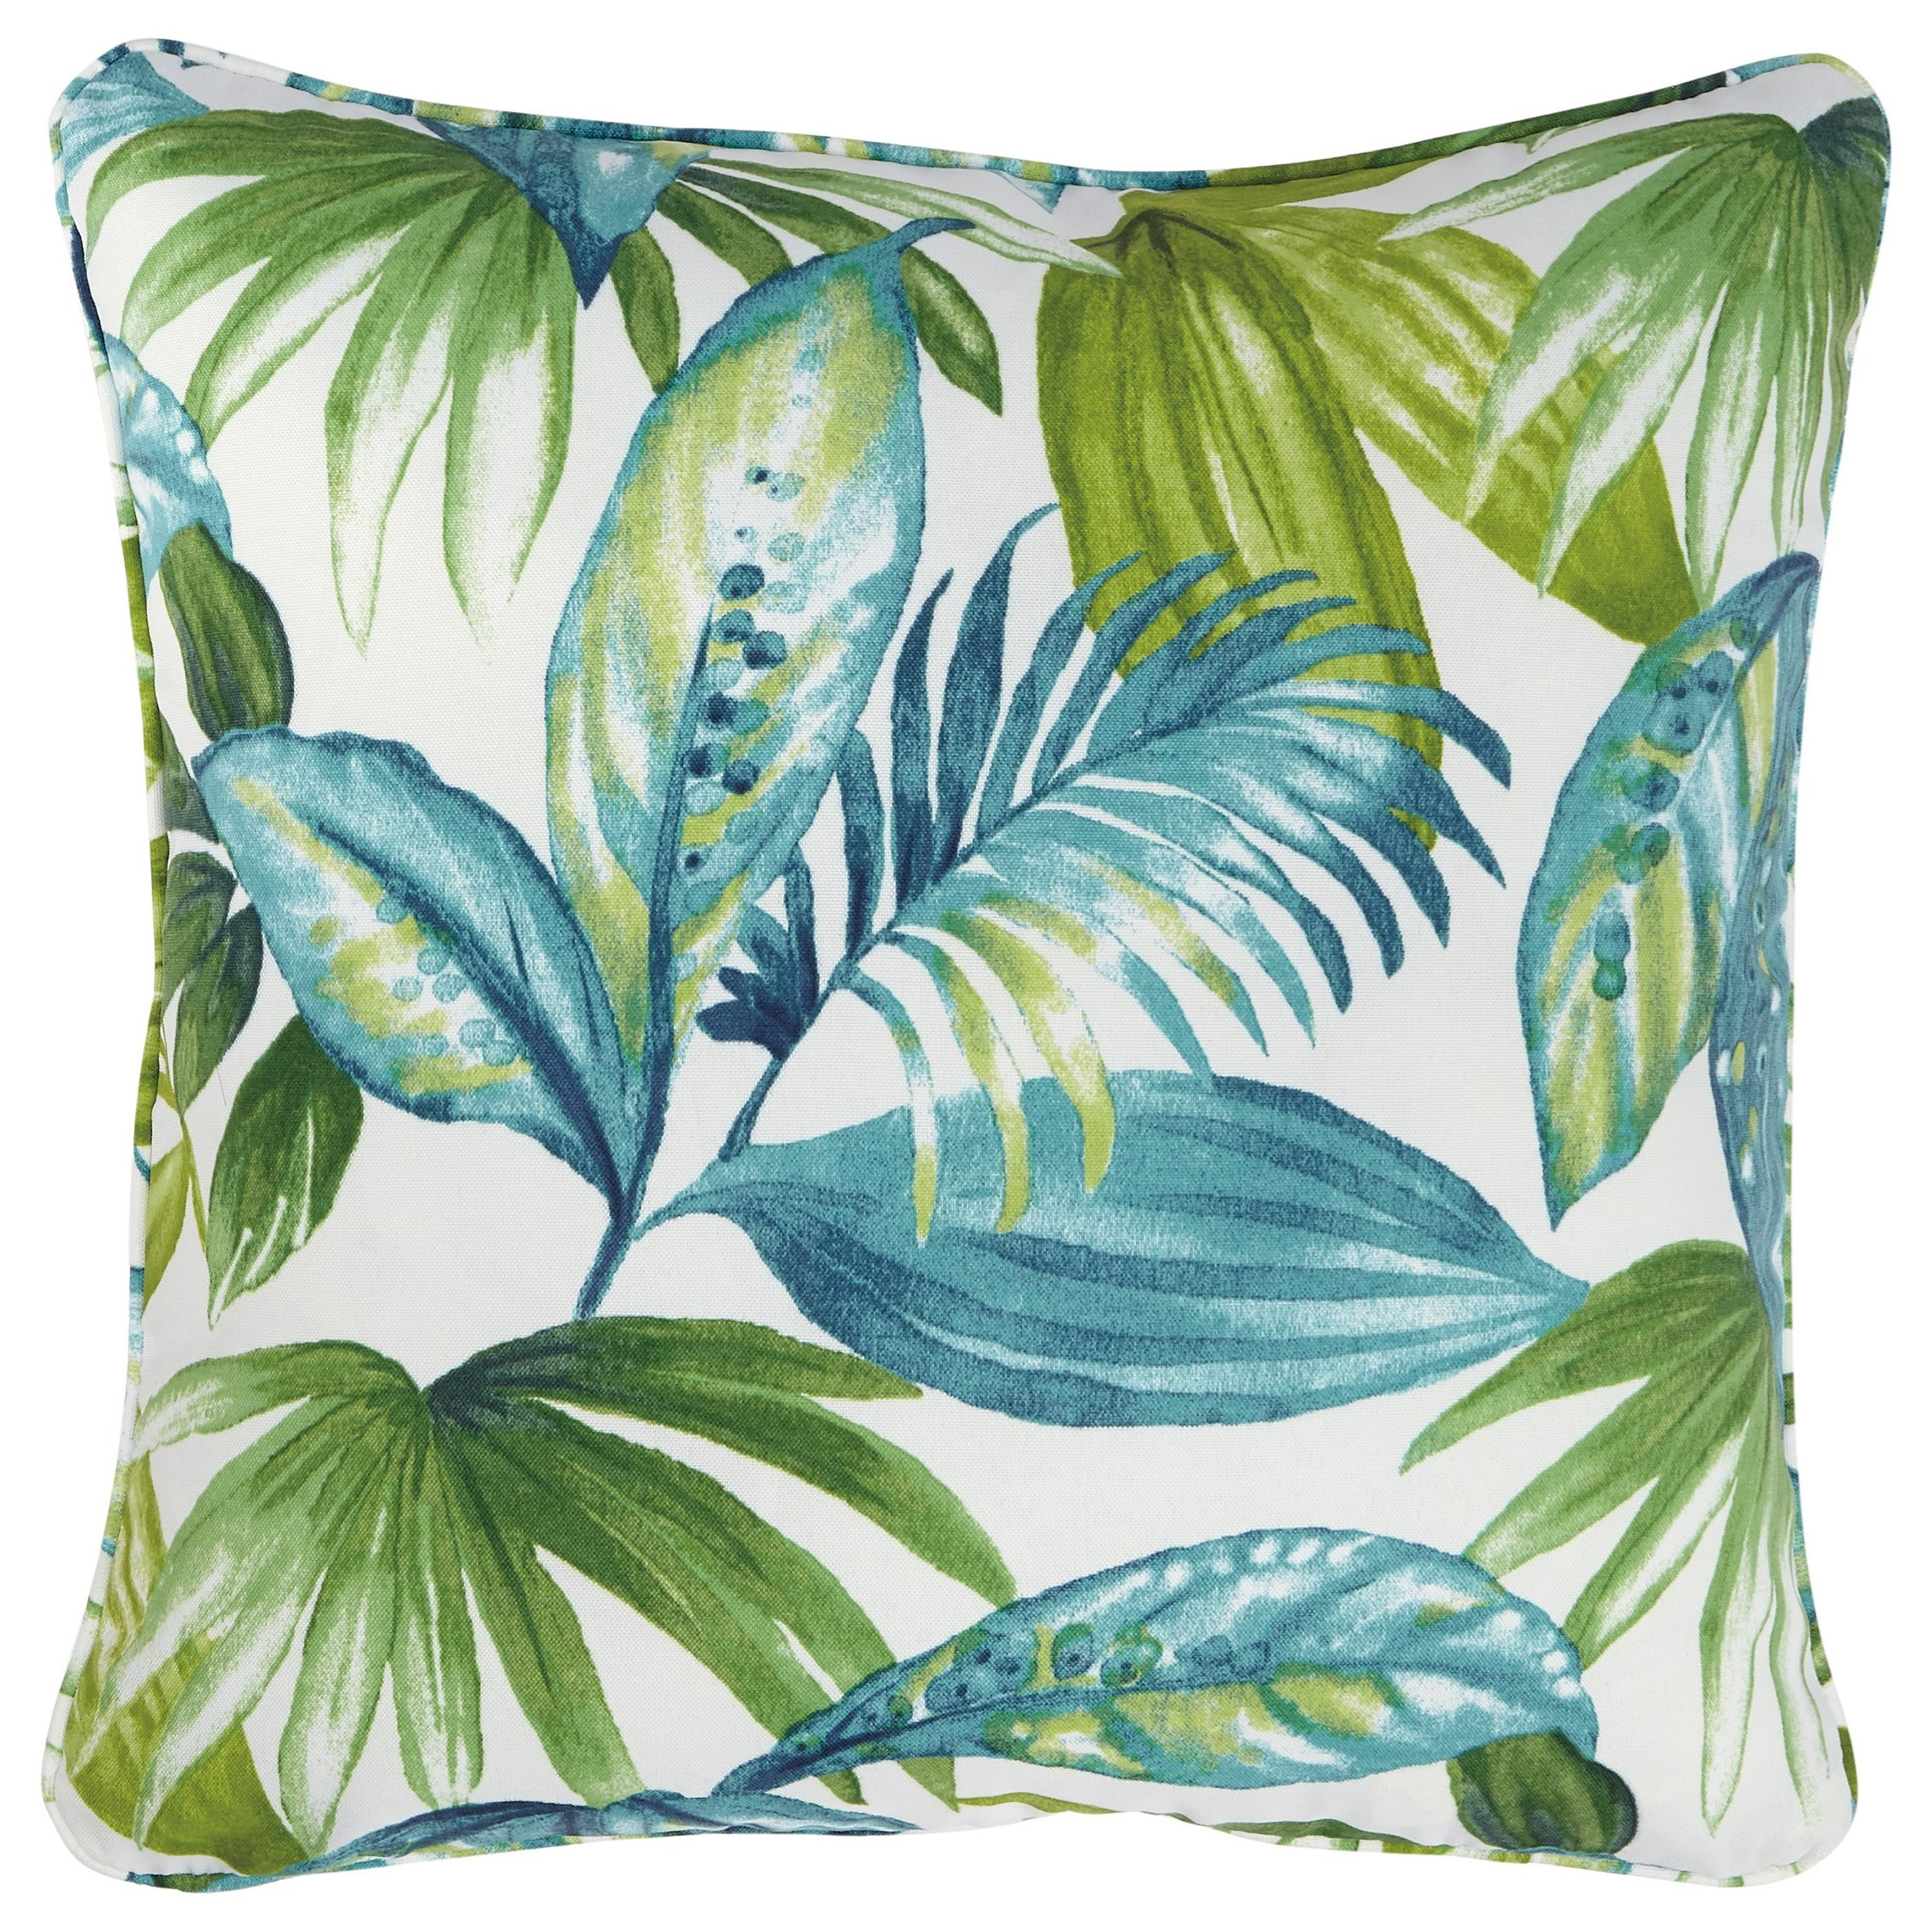 Signature Design by Ashley Pillows Matat Multi Pillow - Item Number: A1000835P